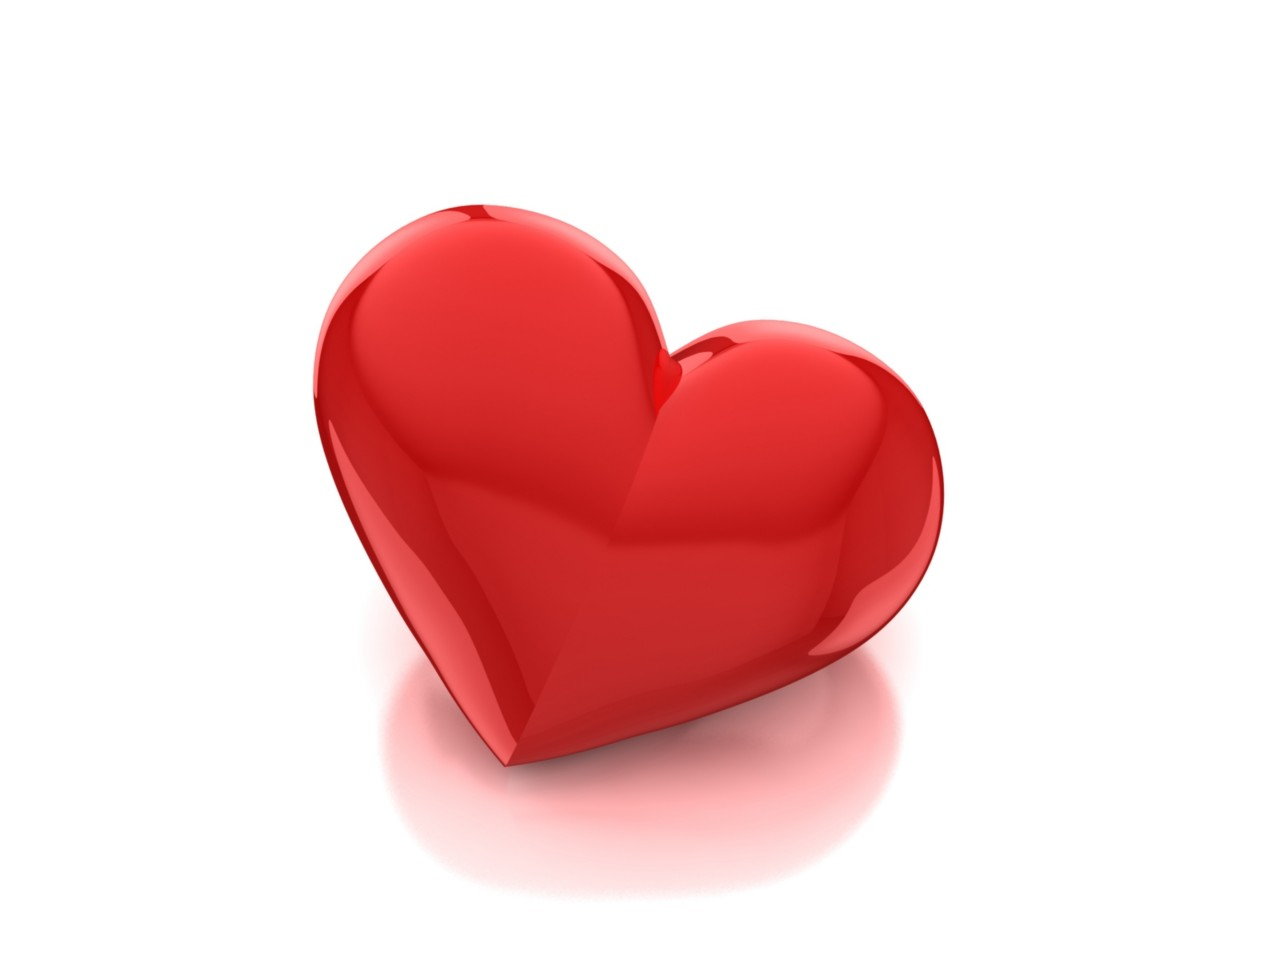 Free 3d Heart Pictures, Download Free Clip Art, Free Clip.